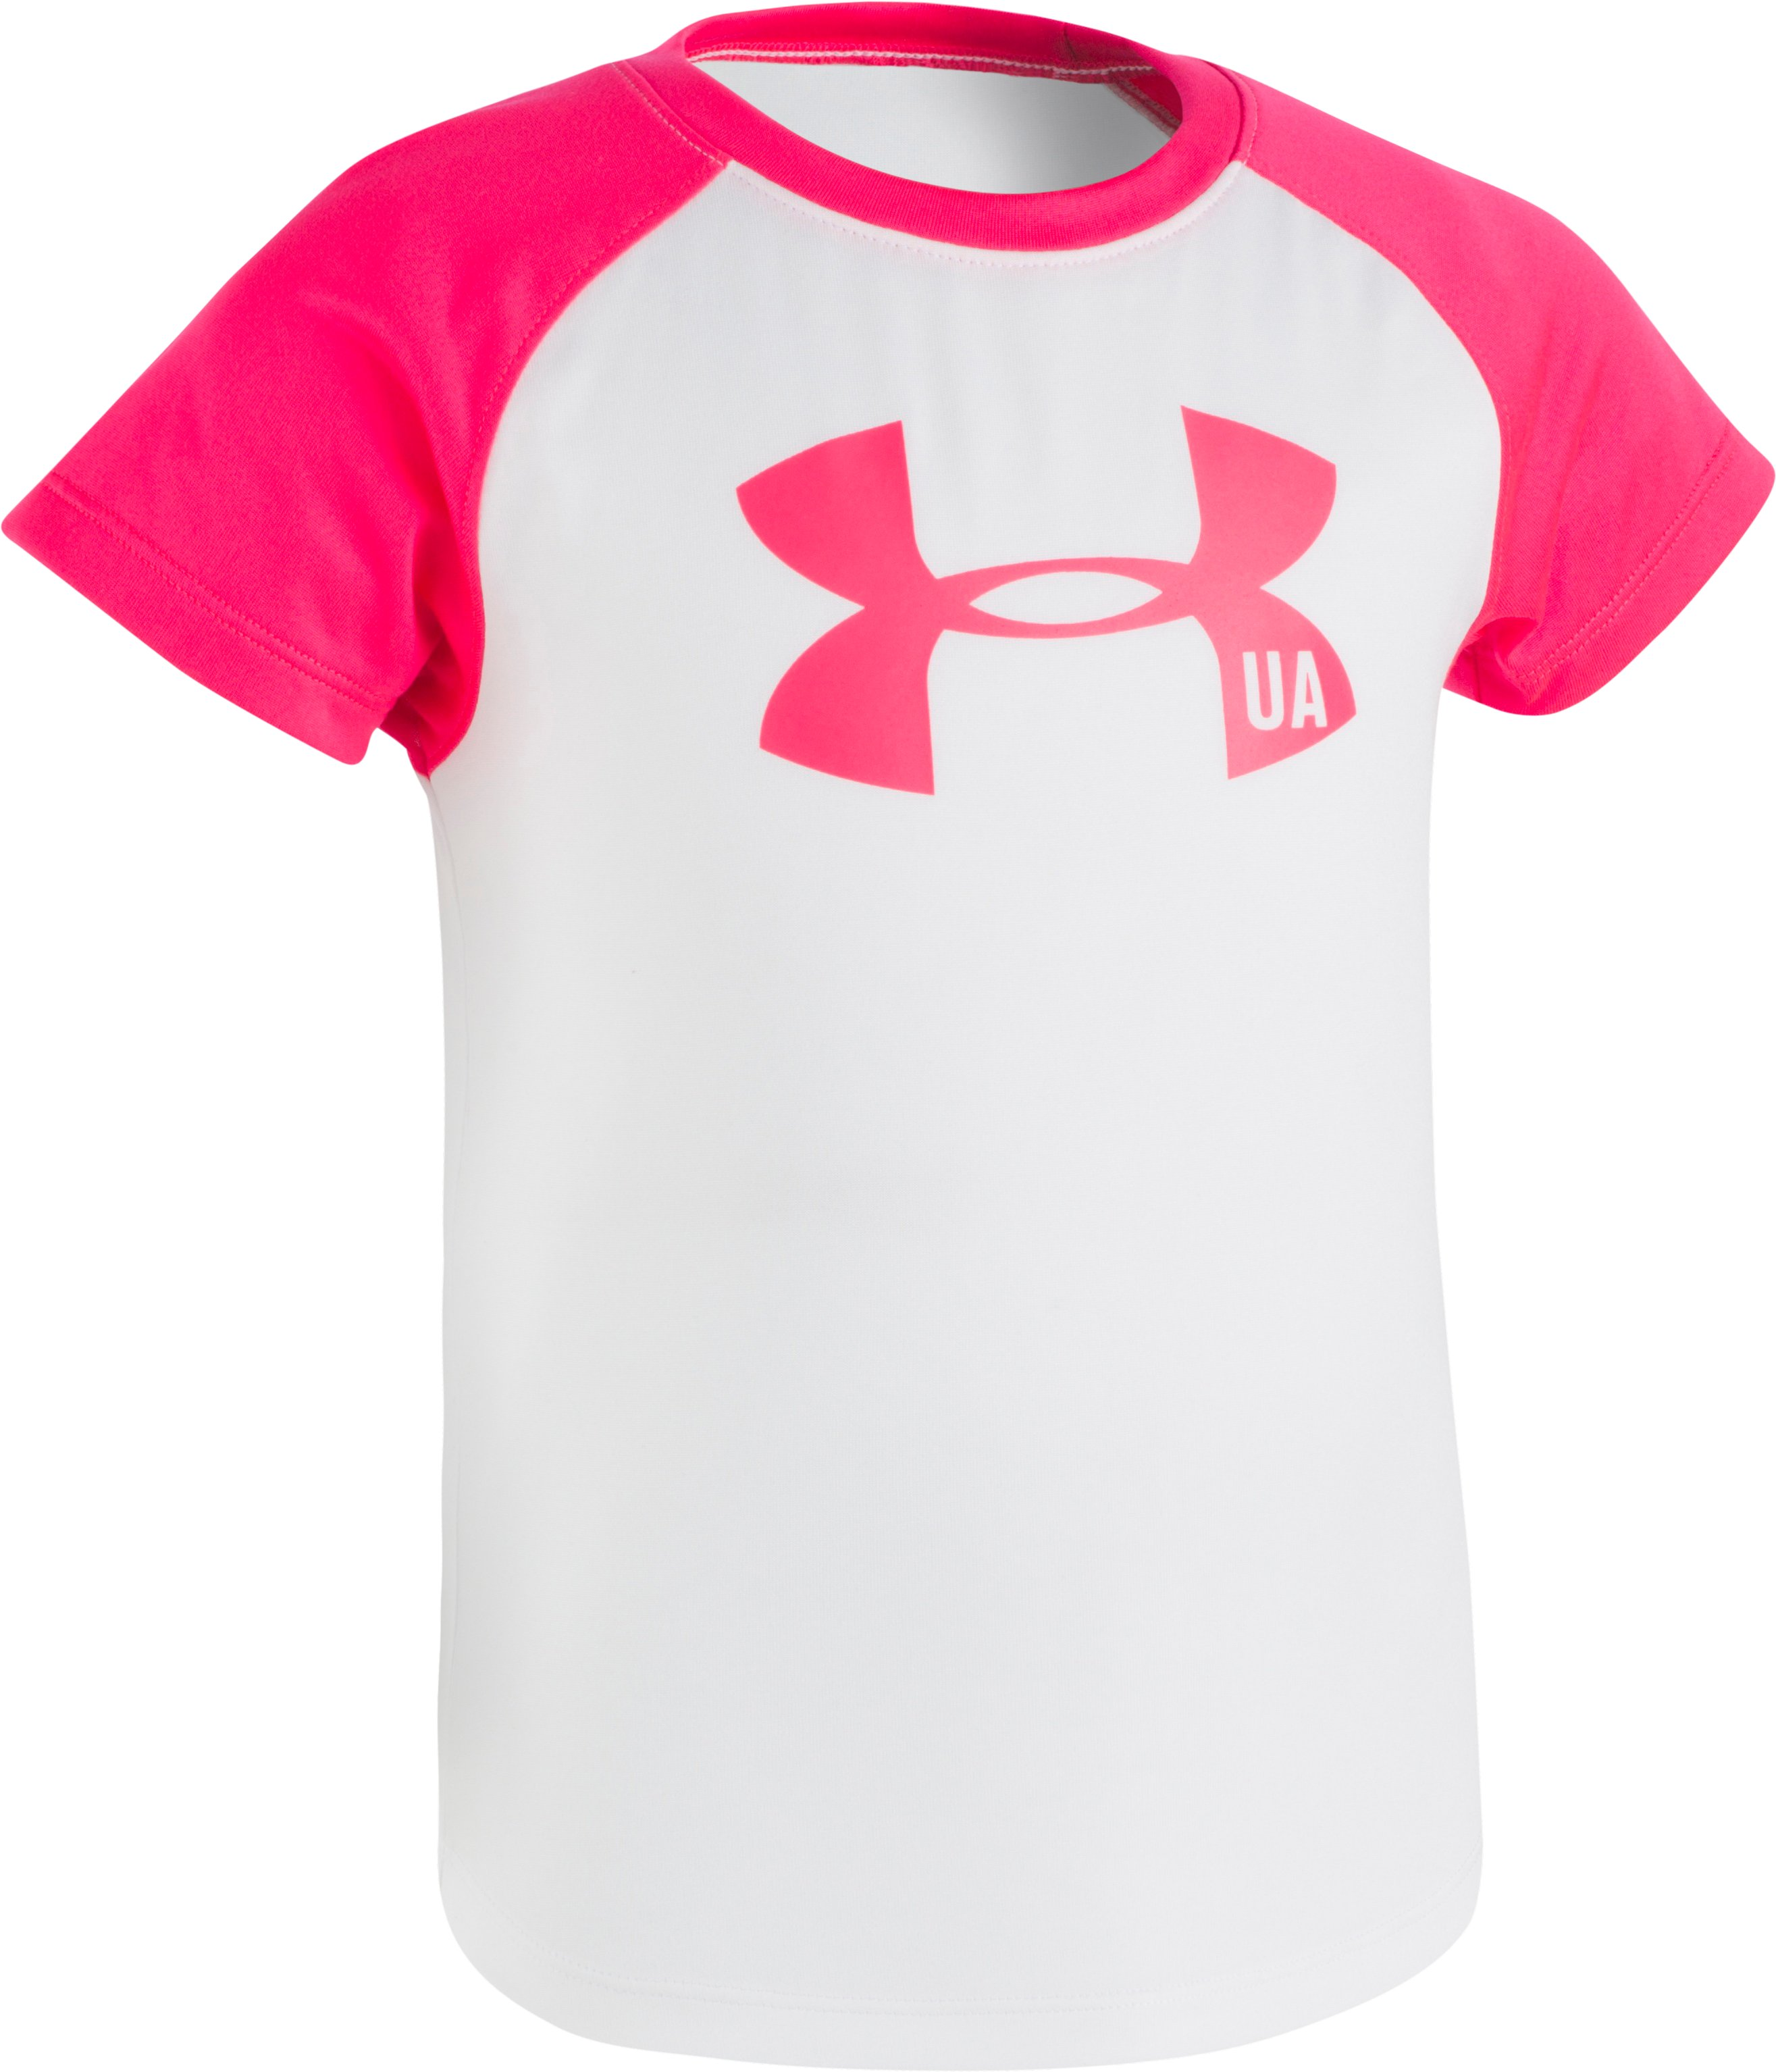 Girls' Pre-School UA Big Logo Raglan Short Sleeve Shirt, White, Laydown